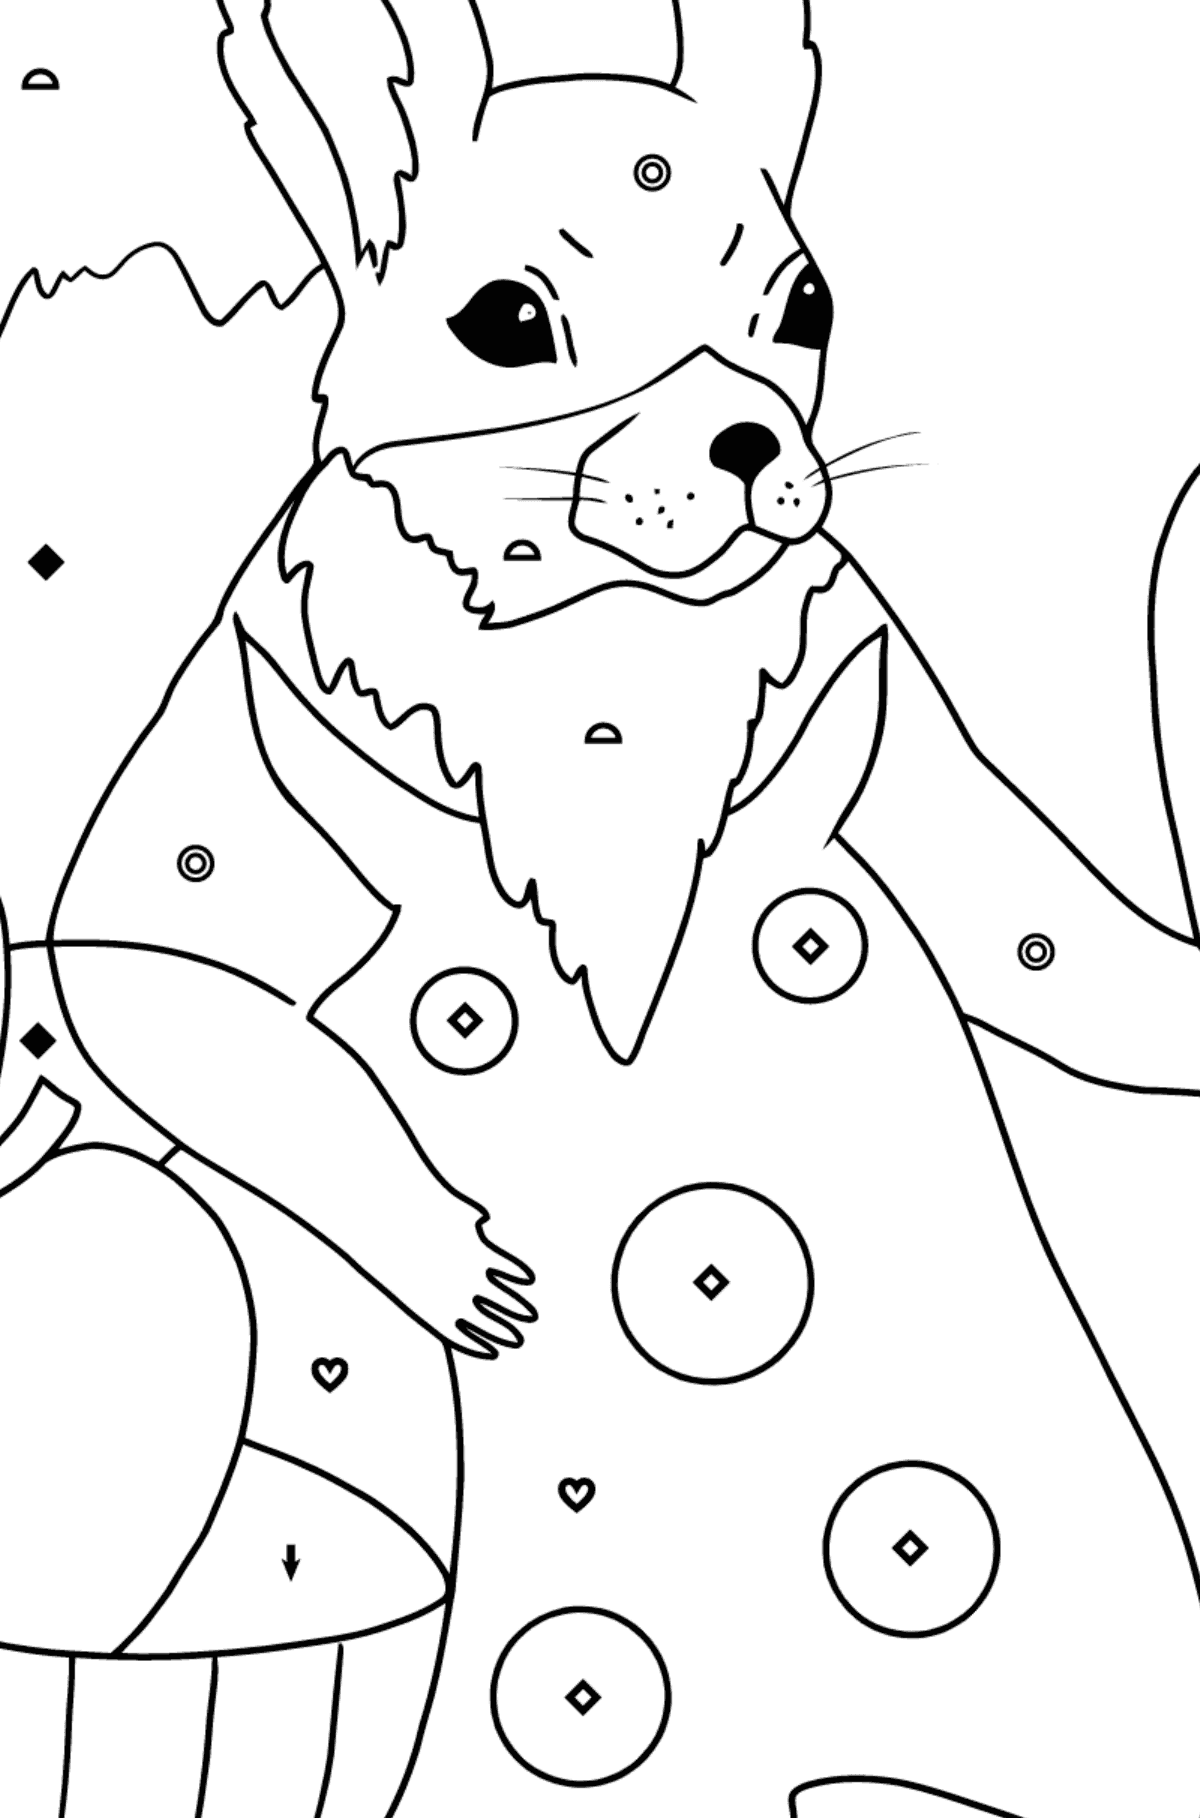 Summer Coloring Page - Squirrels with Apples for Kids  - Color by Symbols and Geometric Shapes